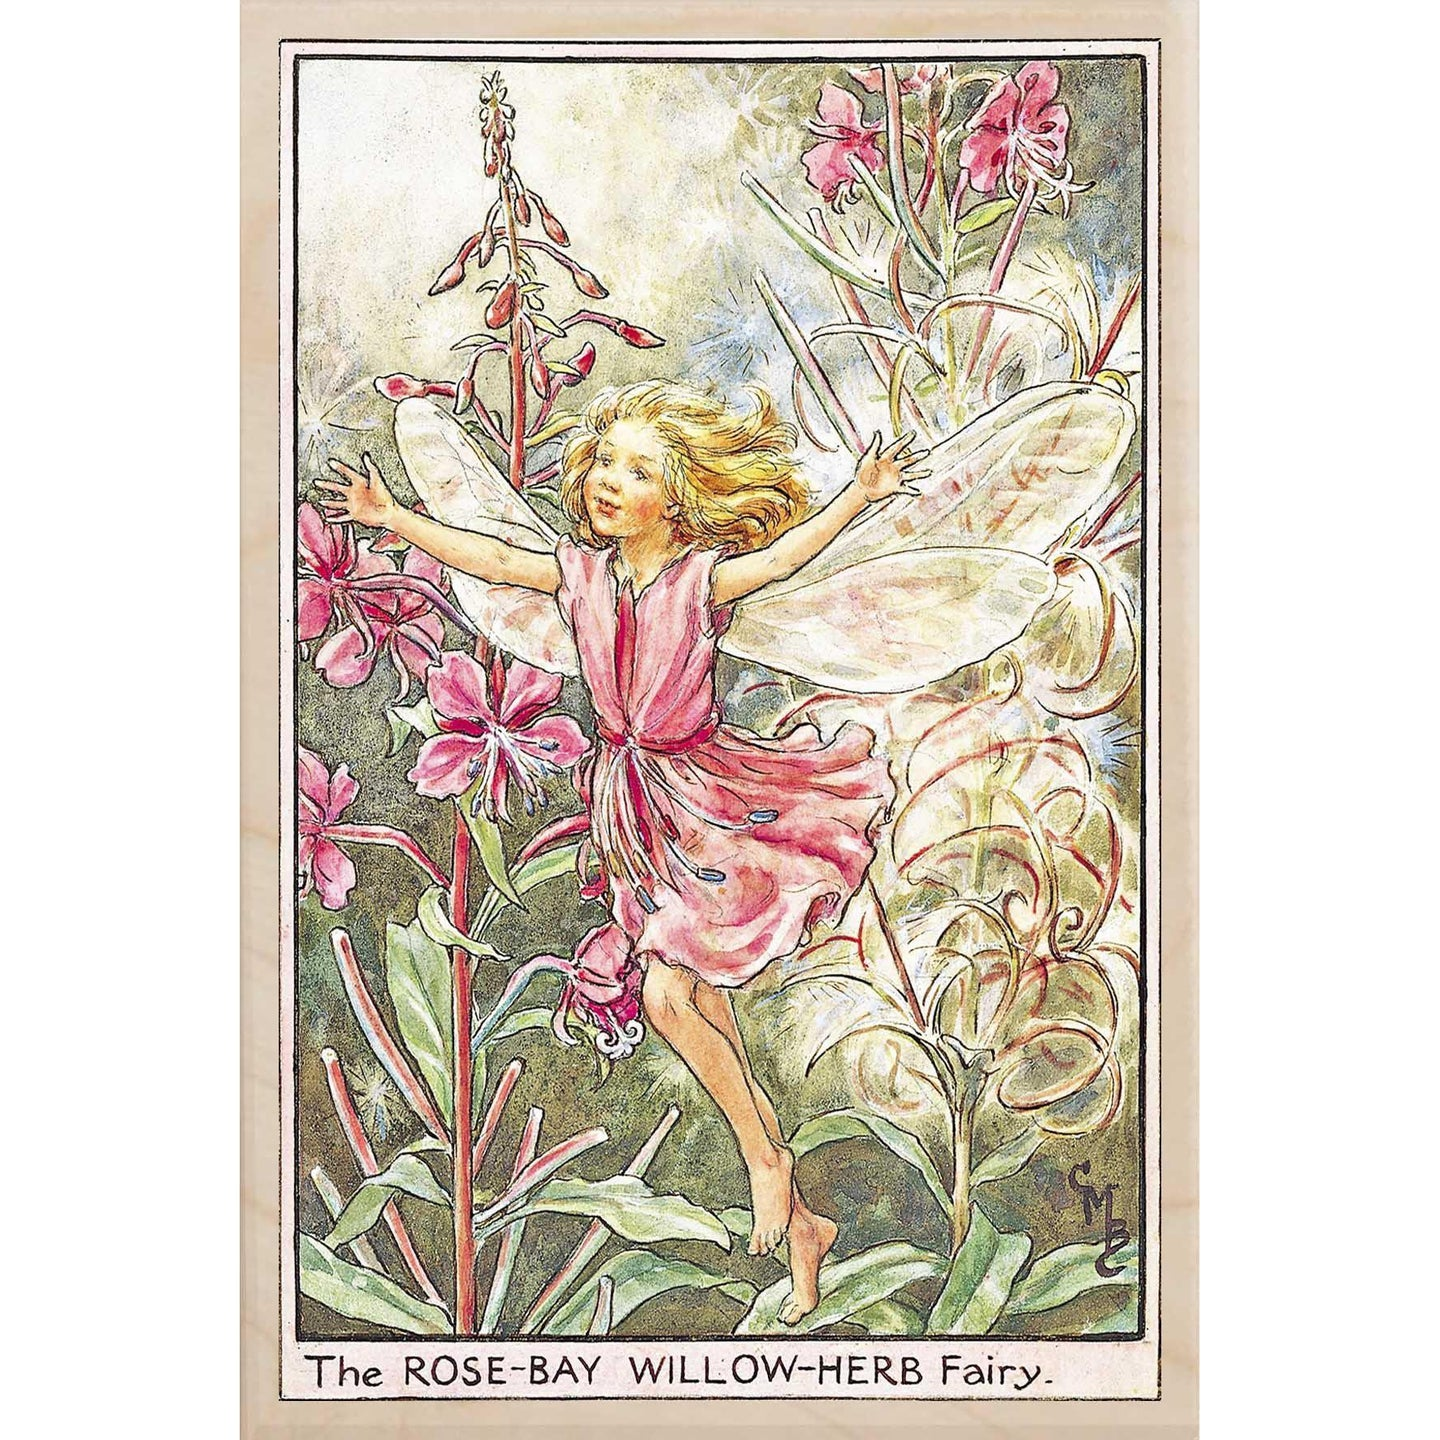 ROSE BAY WILLOW HERB FAIRY